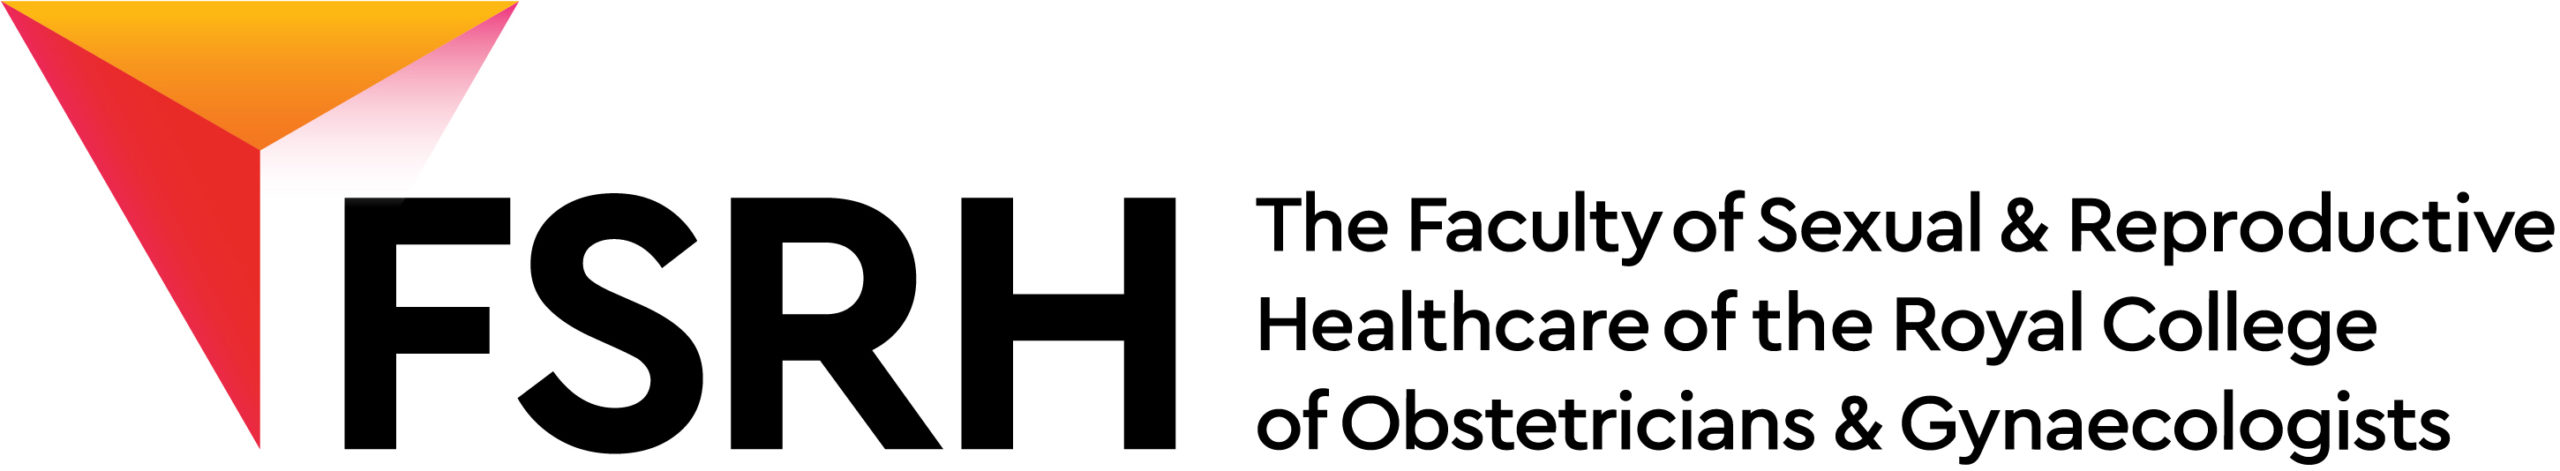 Faculty of Sexual and Reproductive Health logo